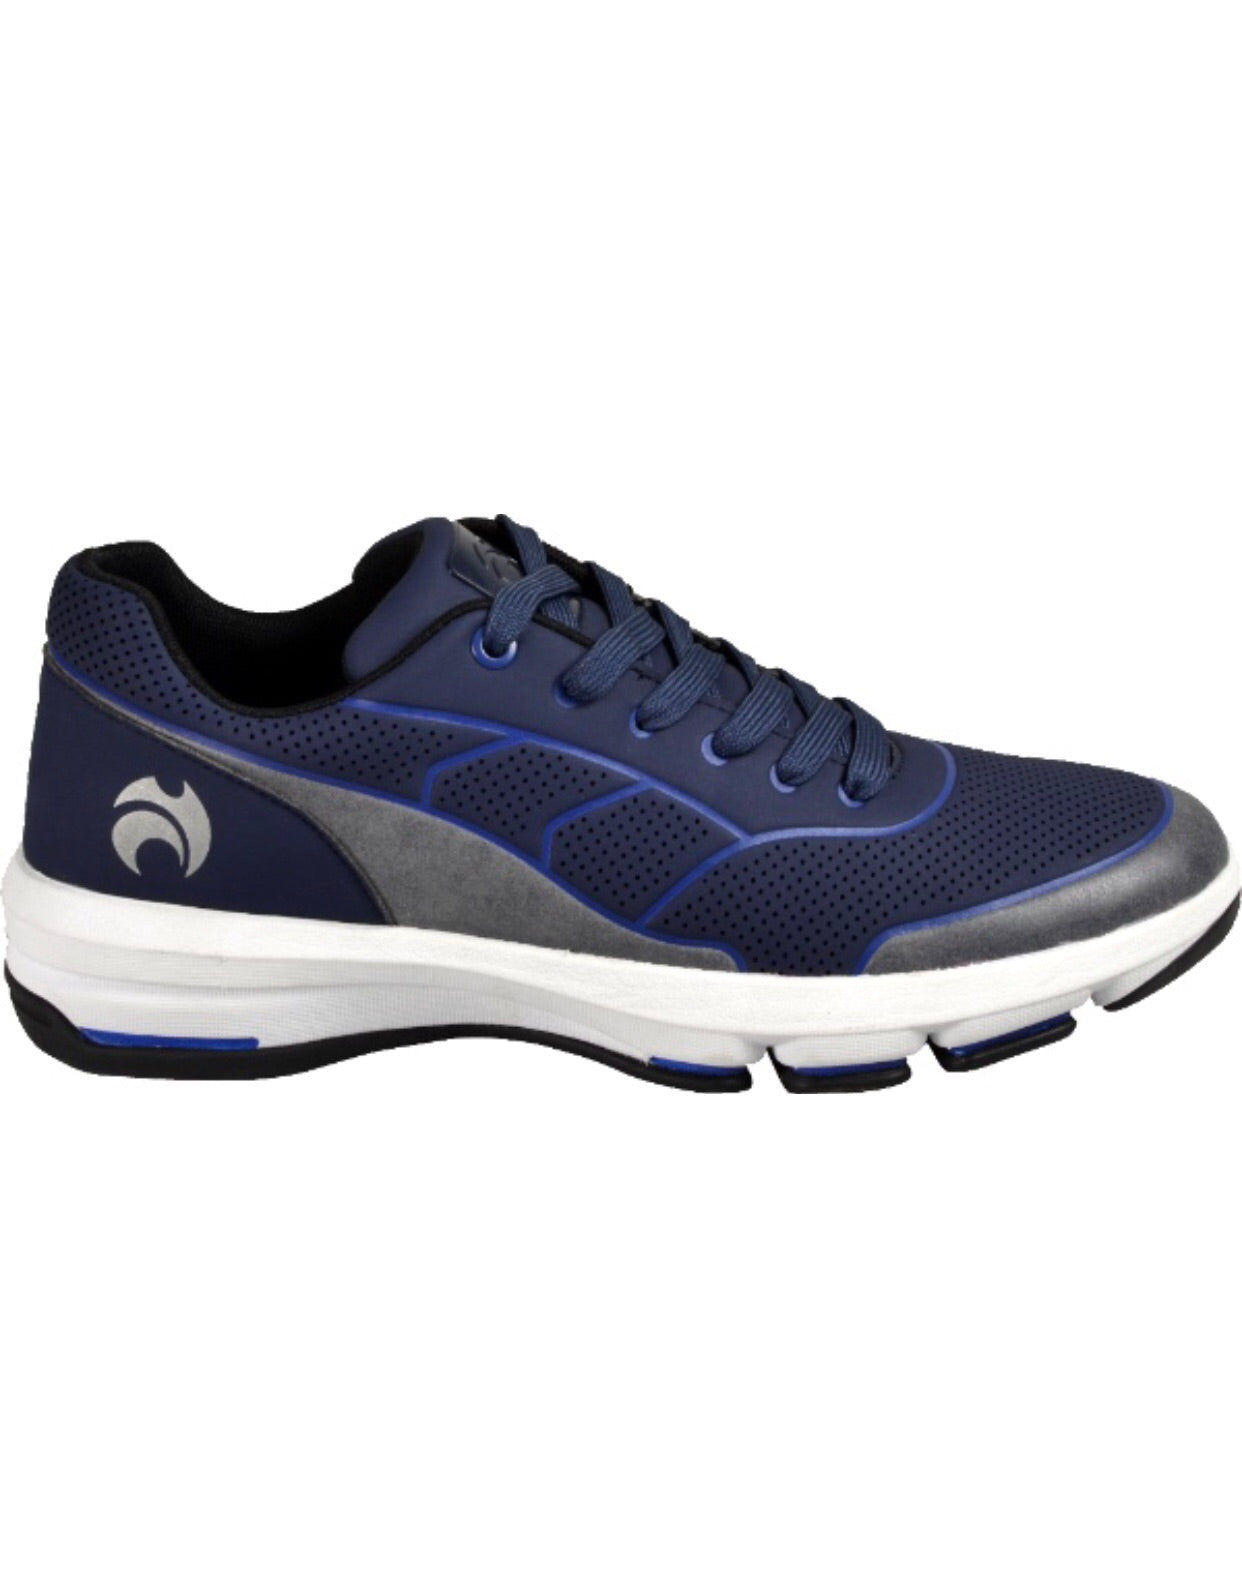 Henselite Men's Pro Sport 52 Shoes